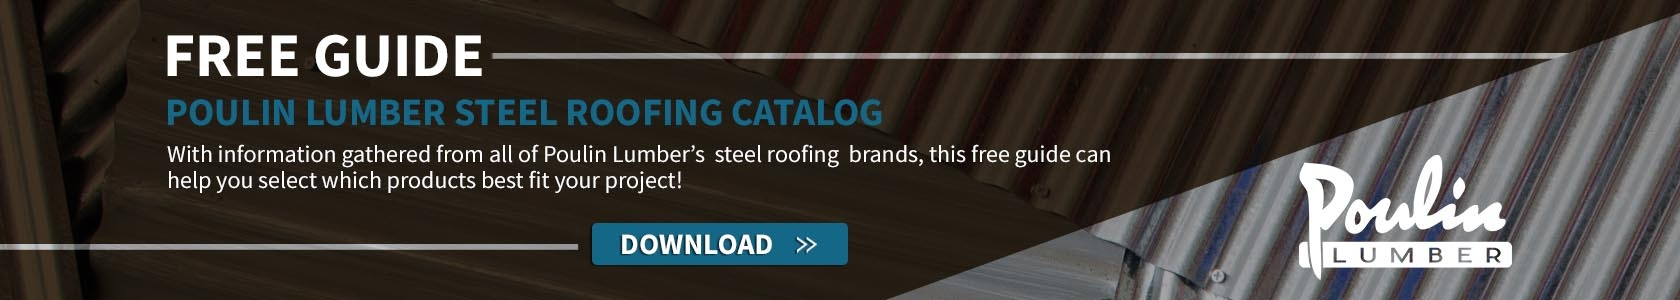 Poulin Lumber Steel Roofing pdf catalog download